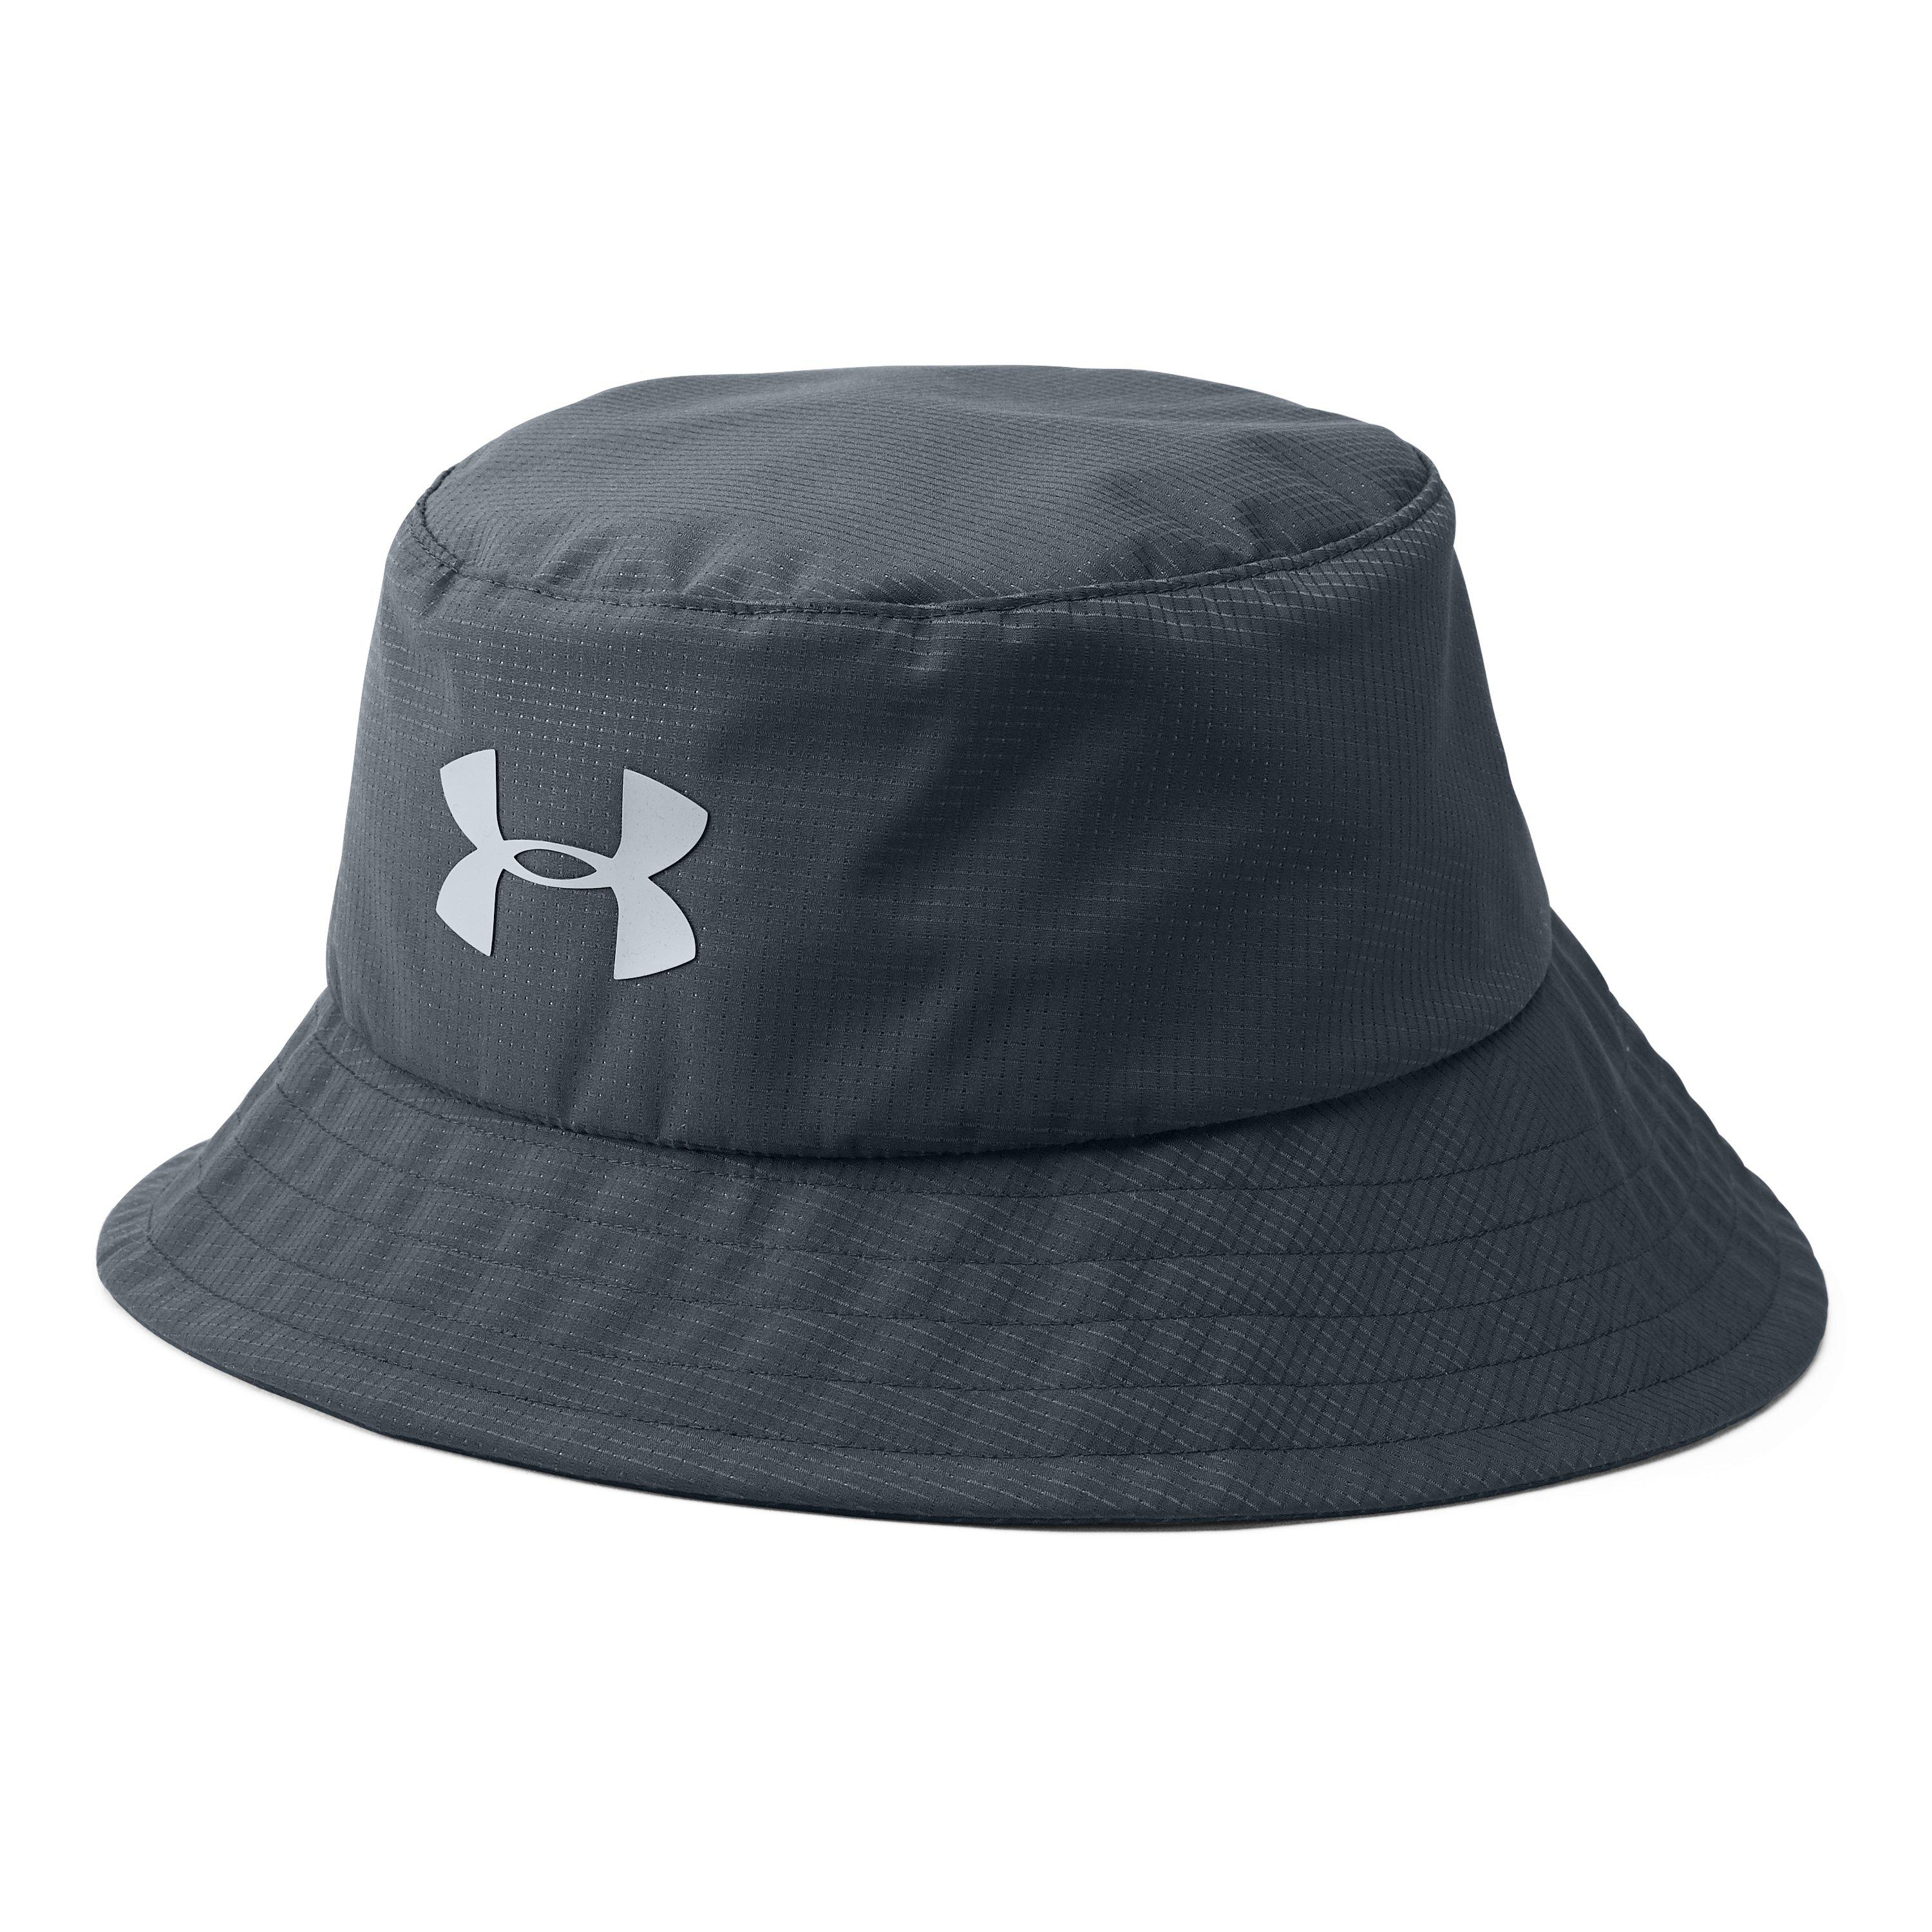 27687e9cc4e Lyst - Under Armour Men s Ua Storm Golf Bucket Hat in Gray for Men